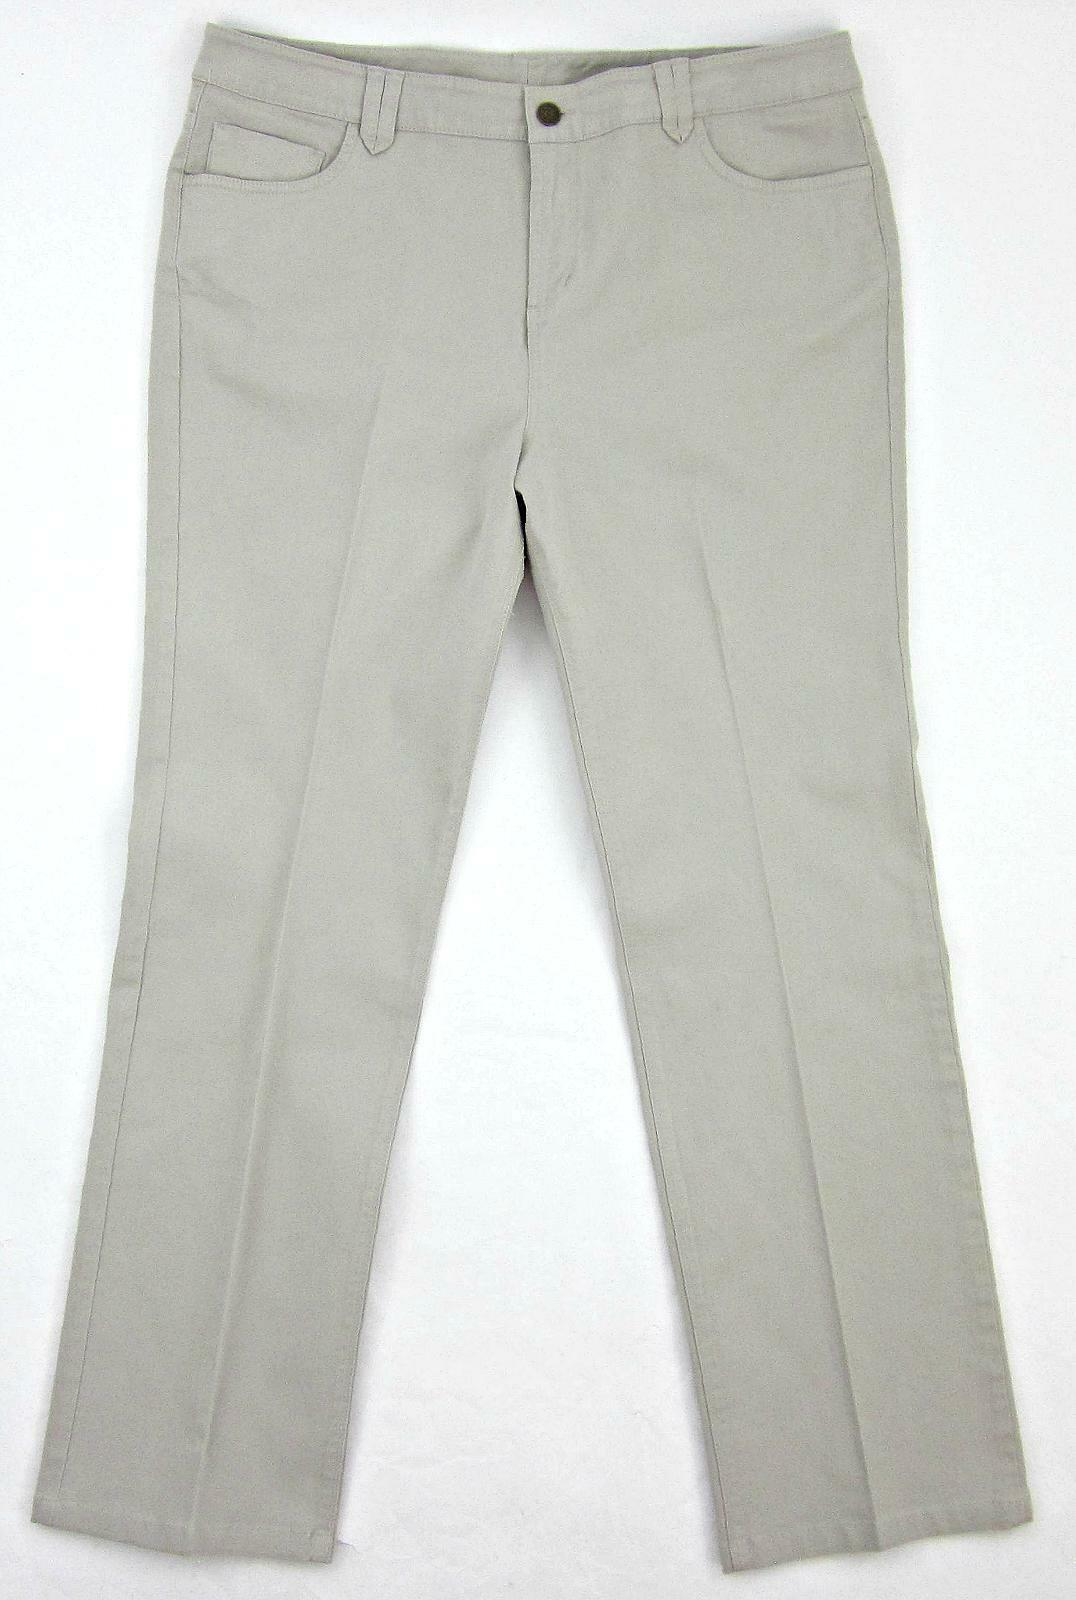 Soft Surroundings Sz. 14 Khaki Stretch Cotton Twill Ankle Jeans Pants